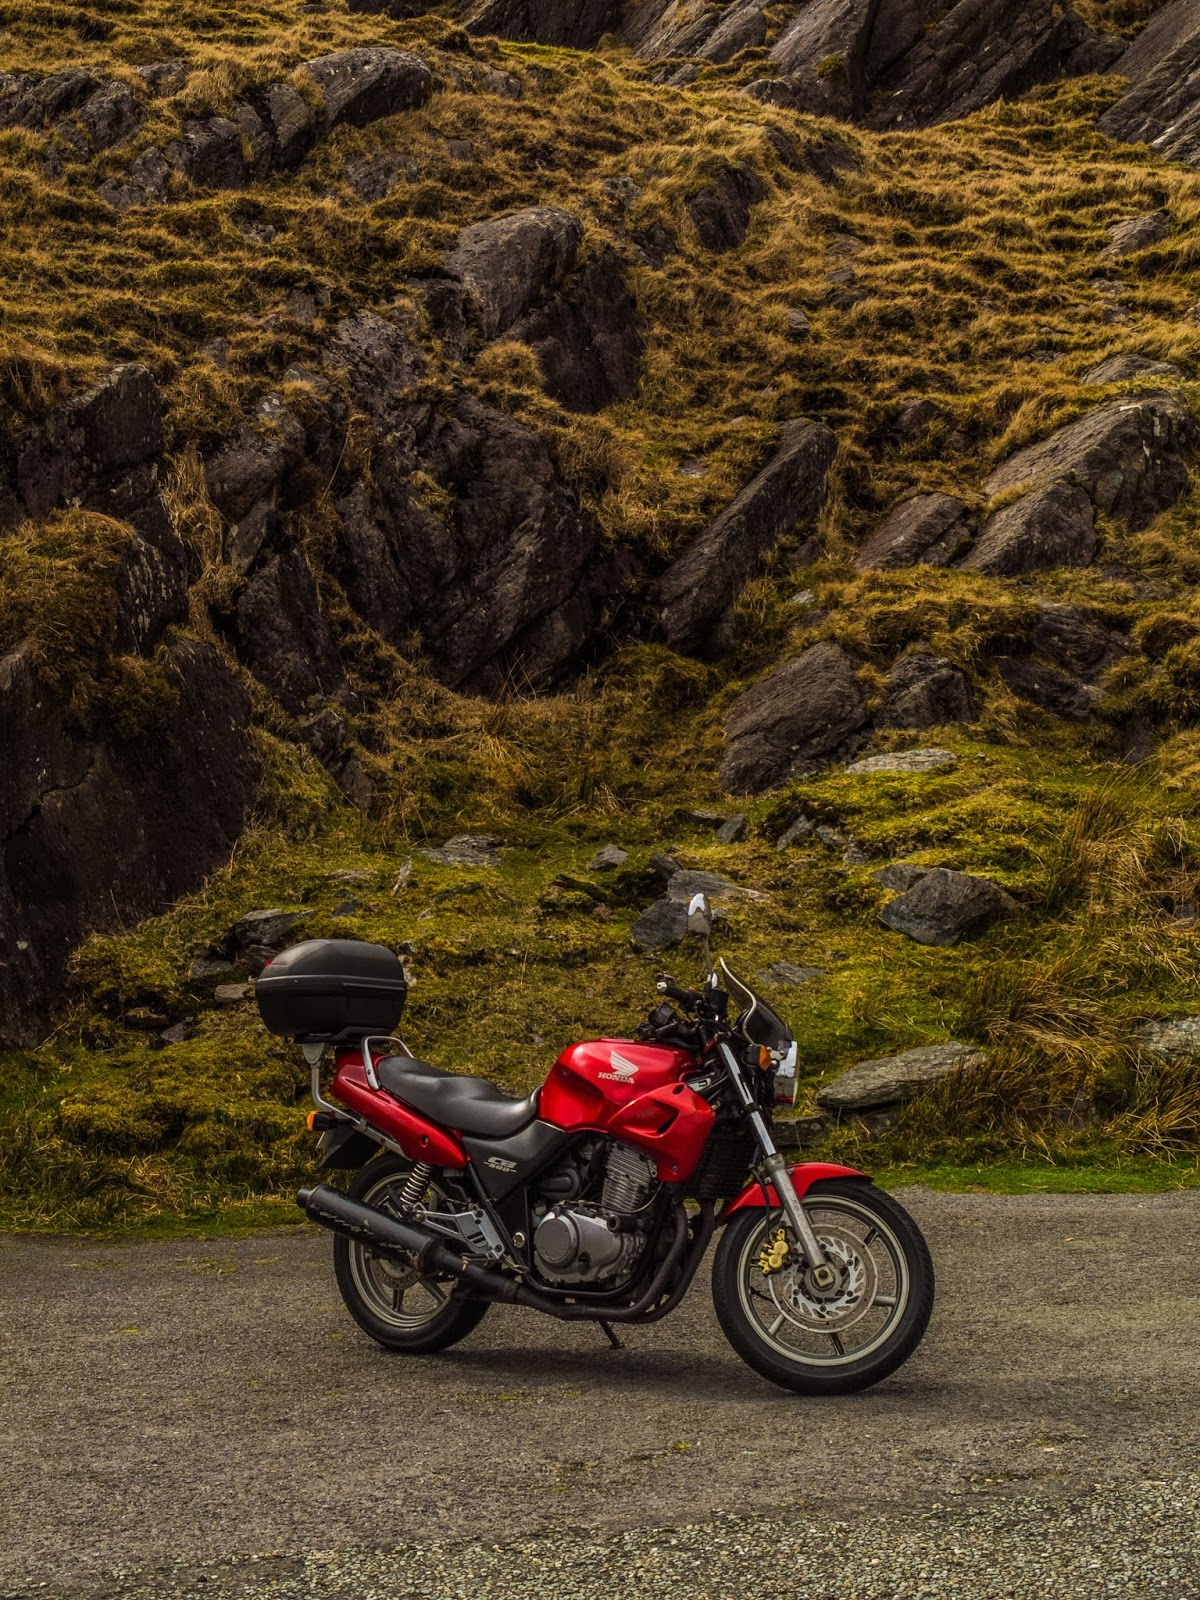 A red Honda CB500 pictured under a rocky and mossy mountain on the Healy Pass in Ireland.